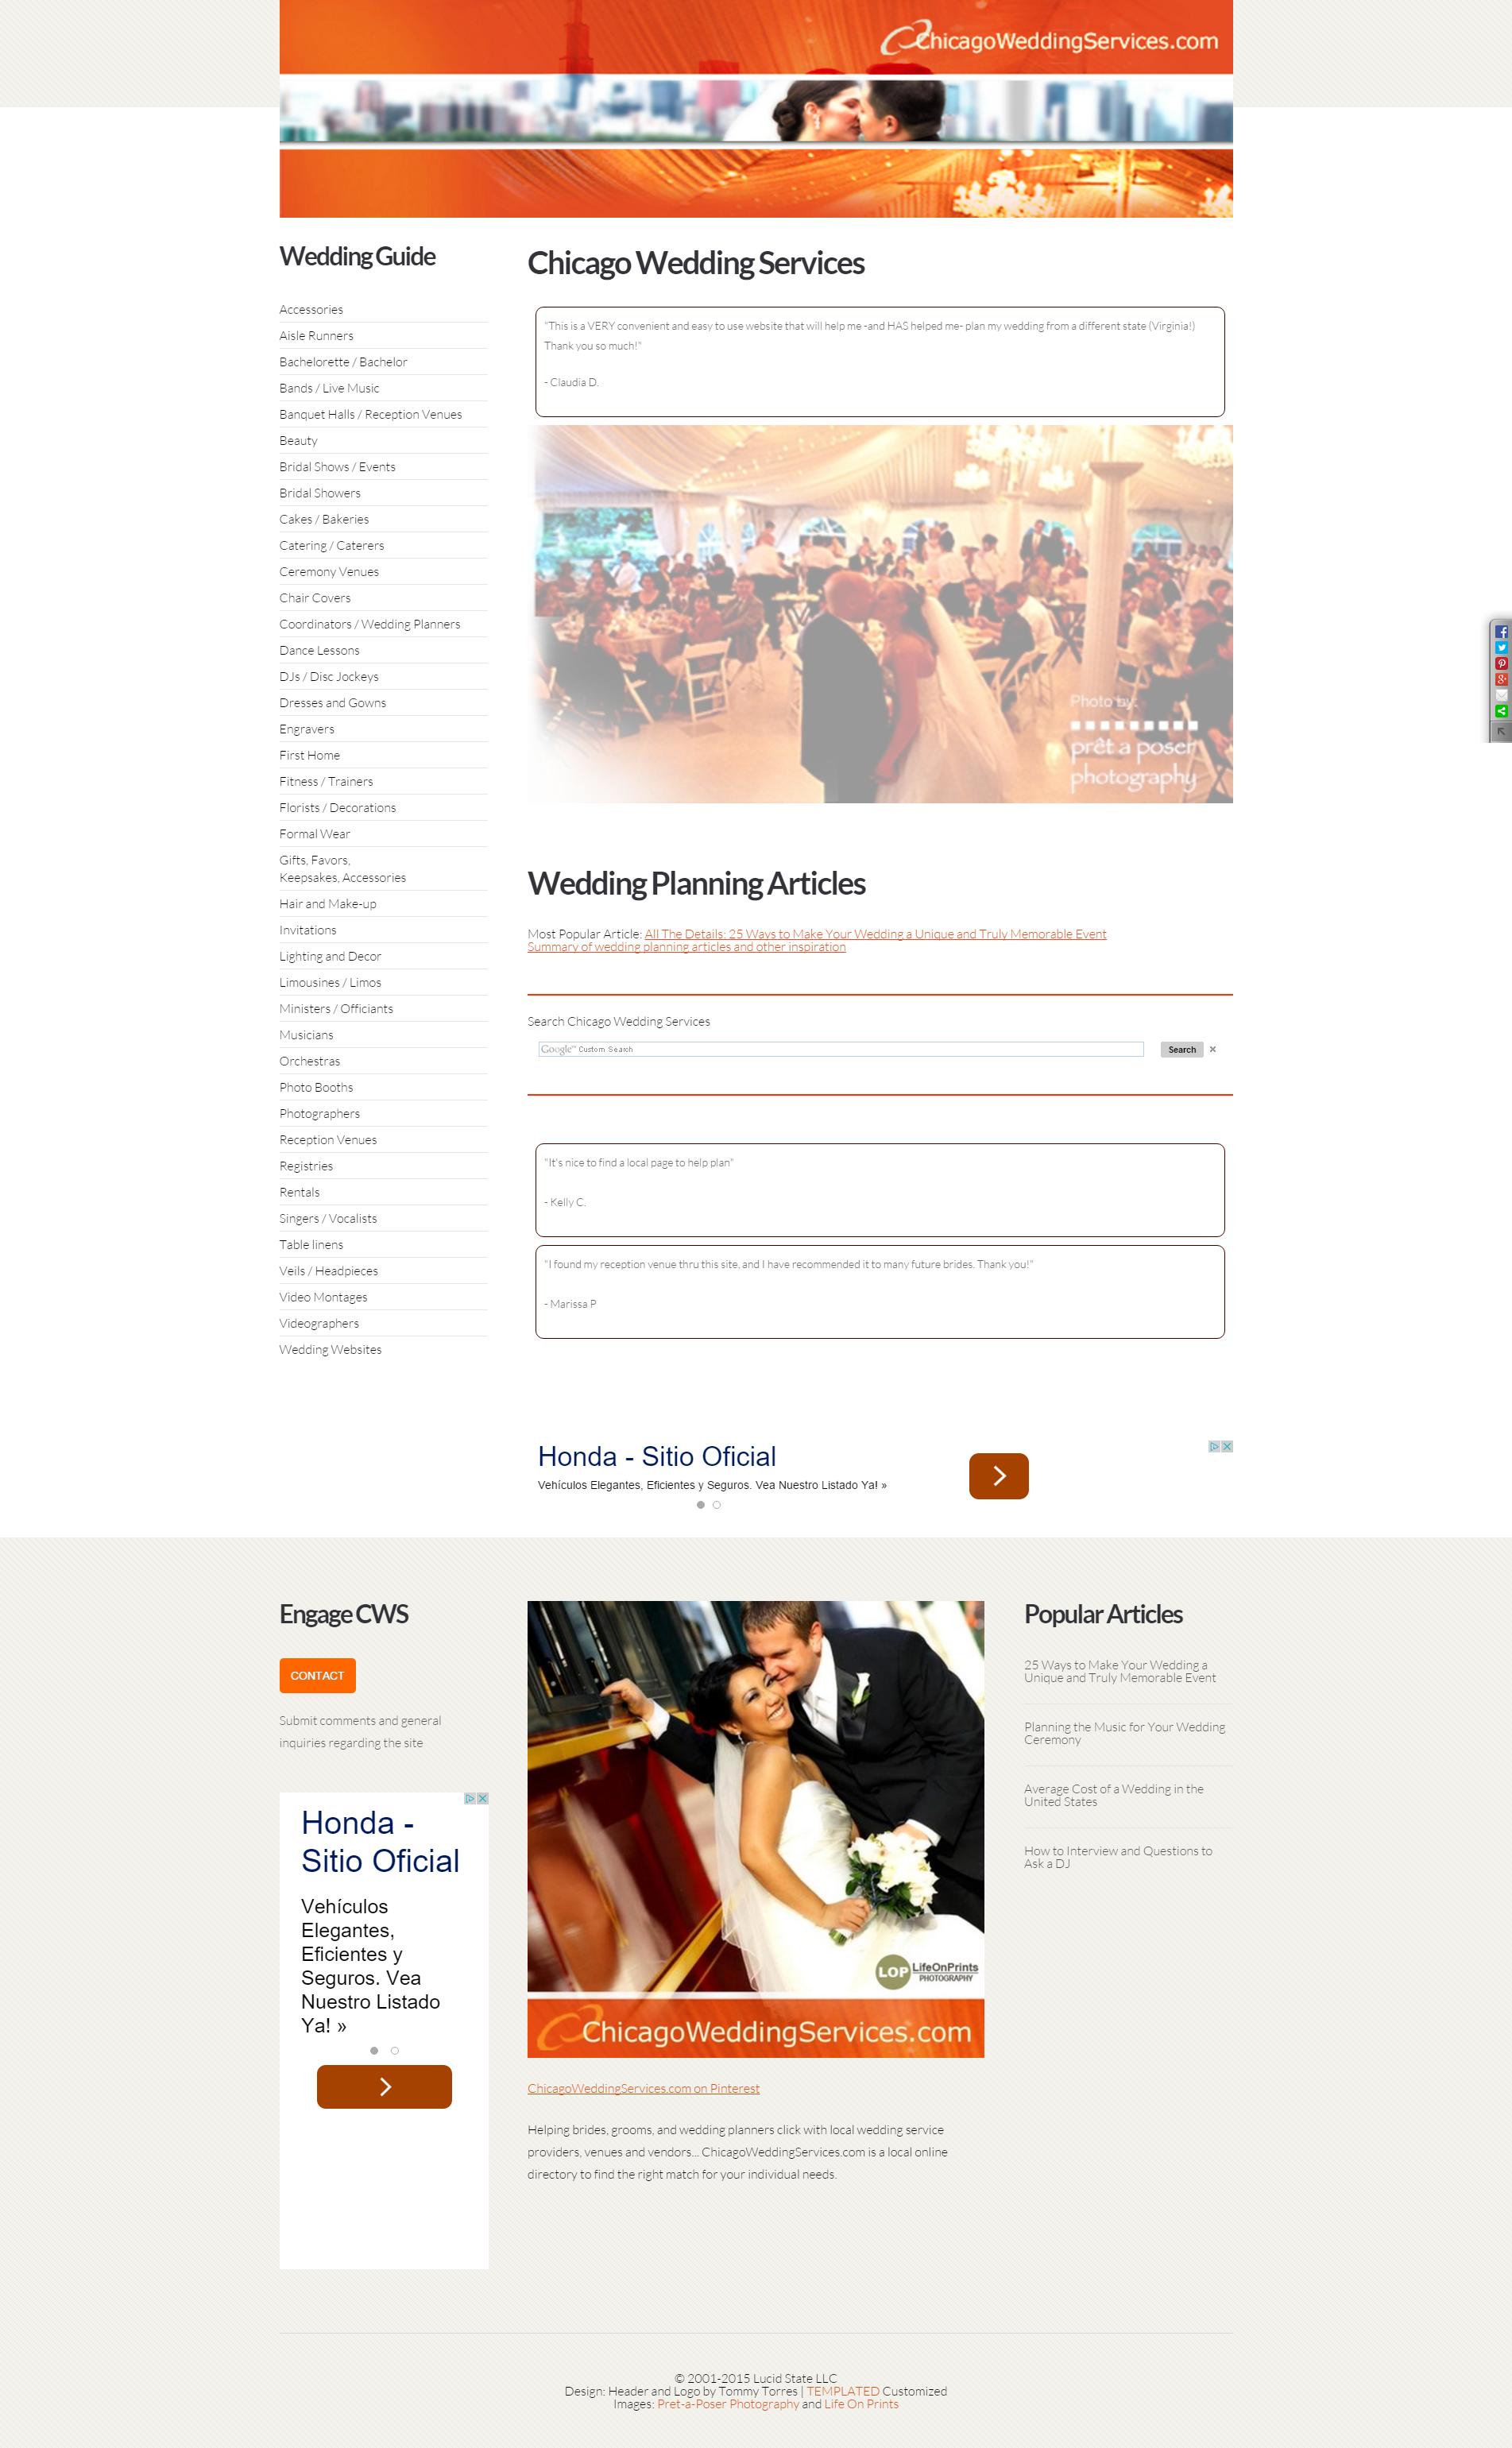 Screenshot of ChicagoWeddingServices.com in 2016